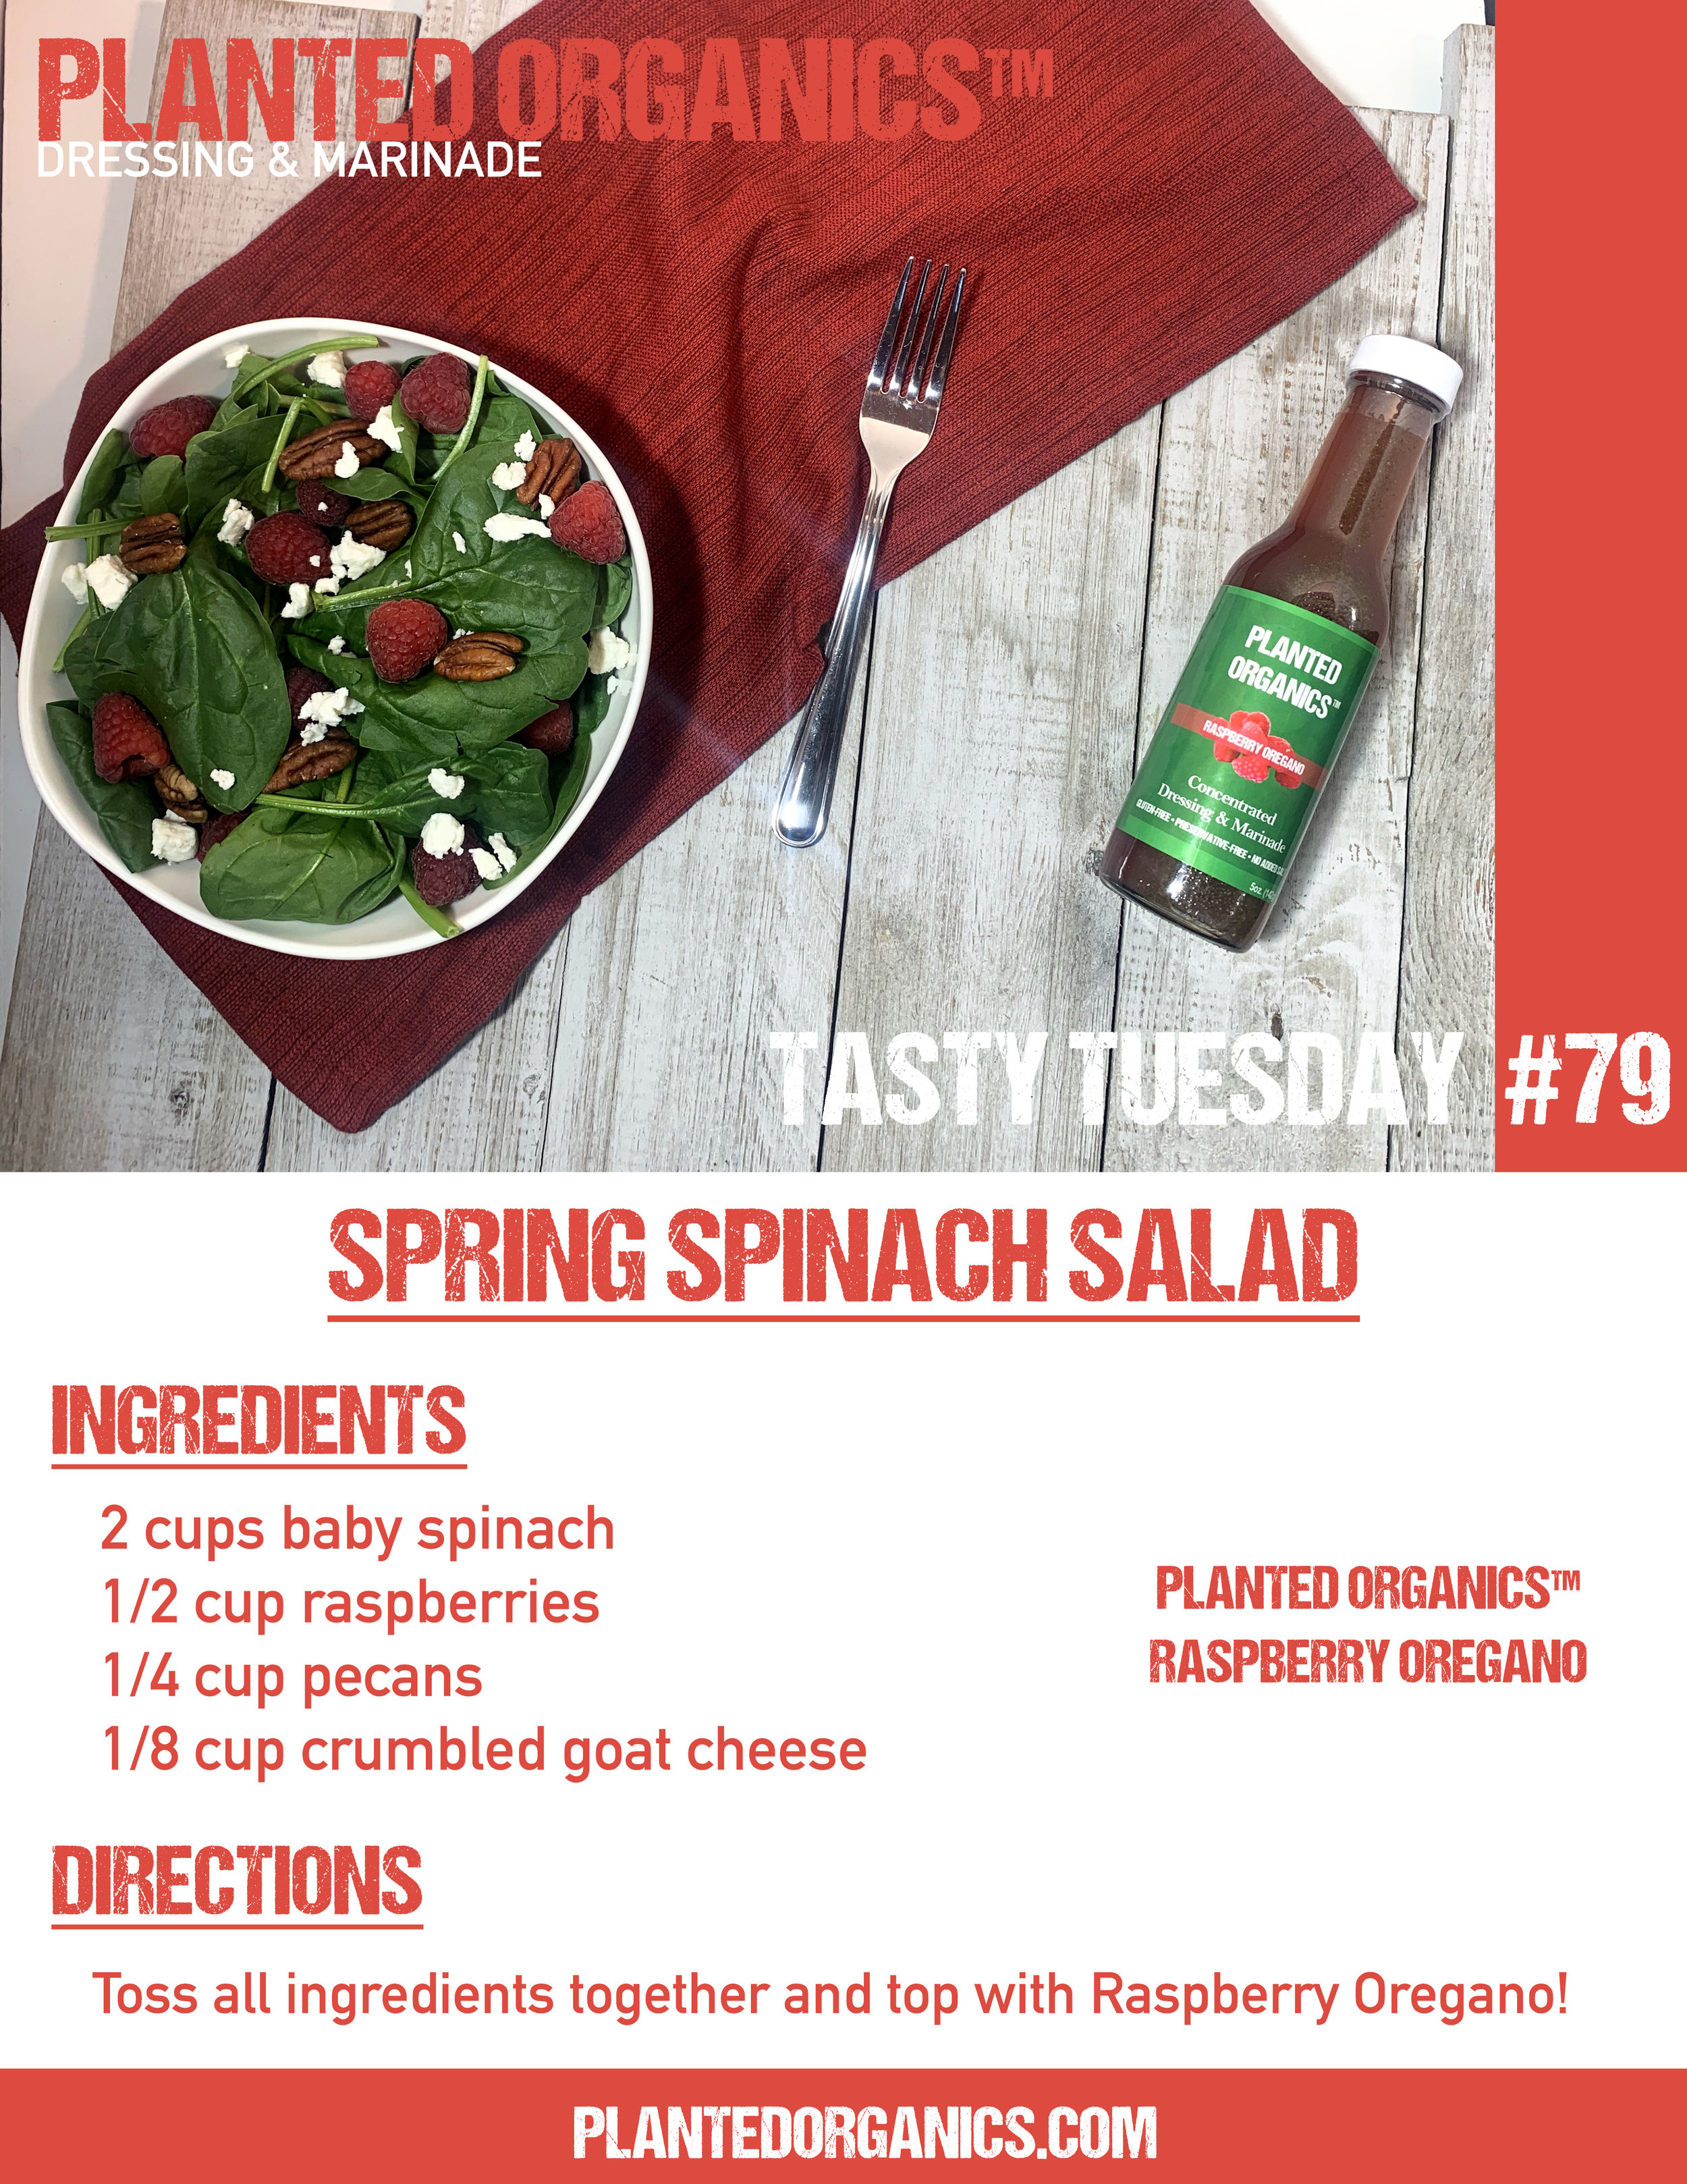 Tasty Tuesday #79! - This week's salad is a simple Spring Spinach Salad. Our top selling Raspberry Oregano completes the dish with goat cheese, pecans and fresh raspberries!